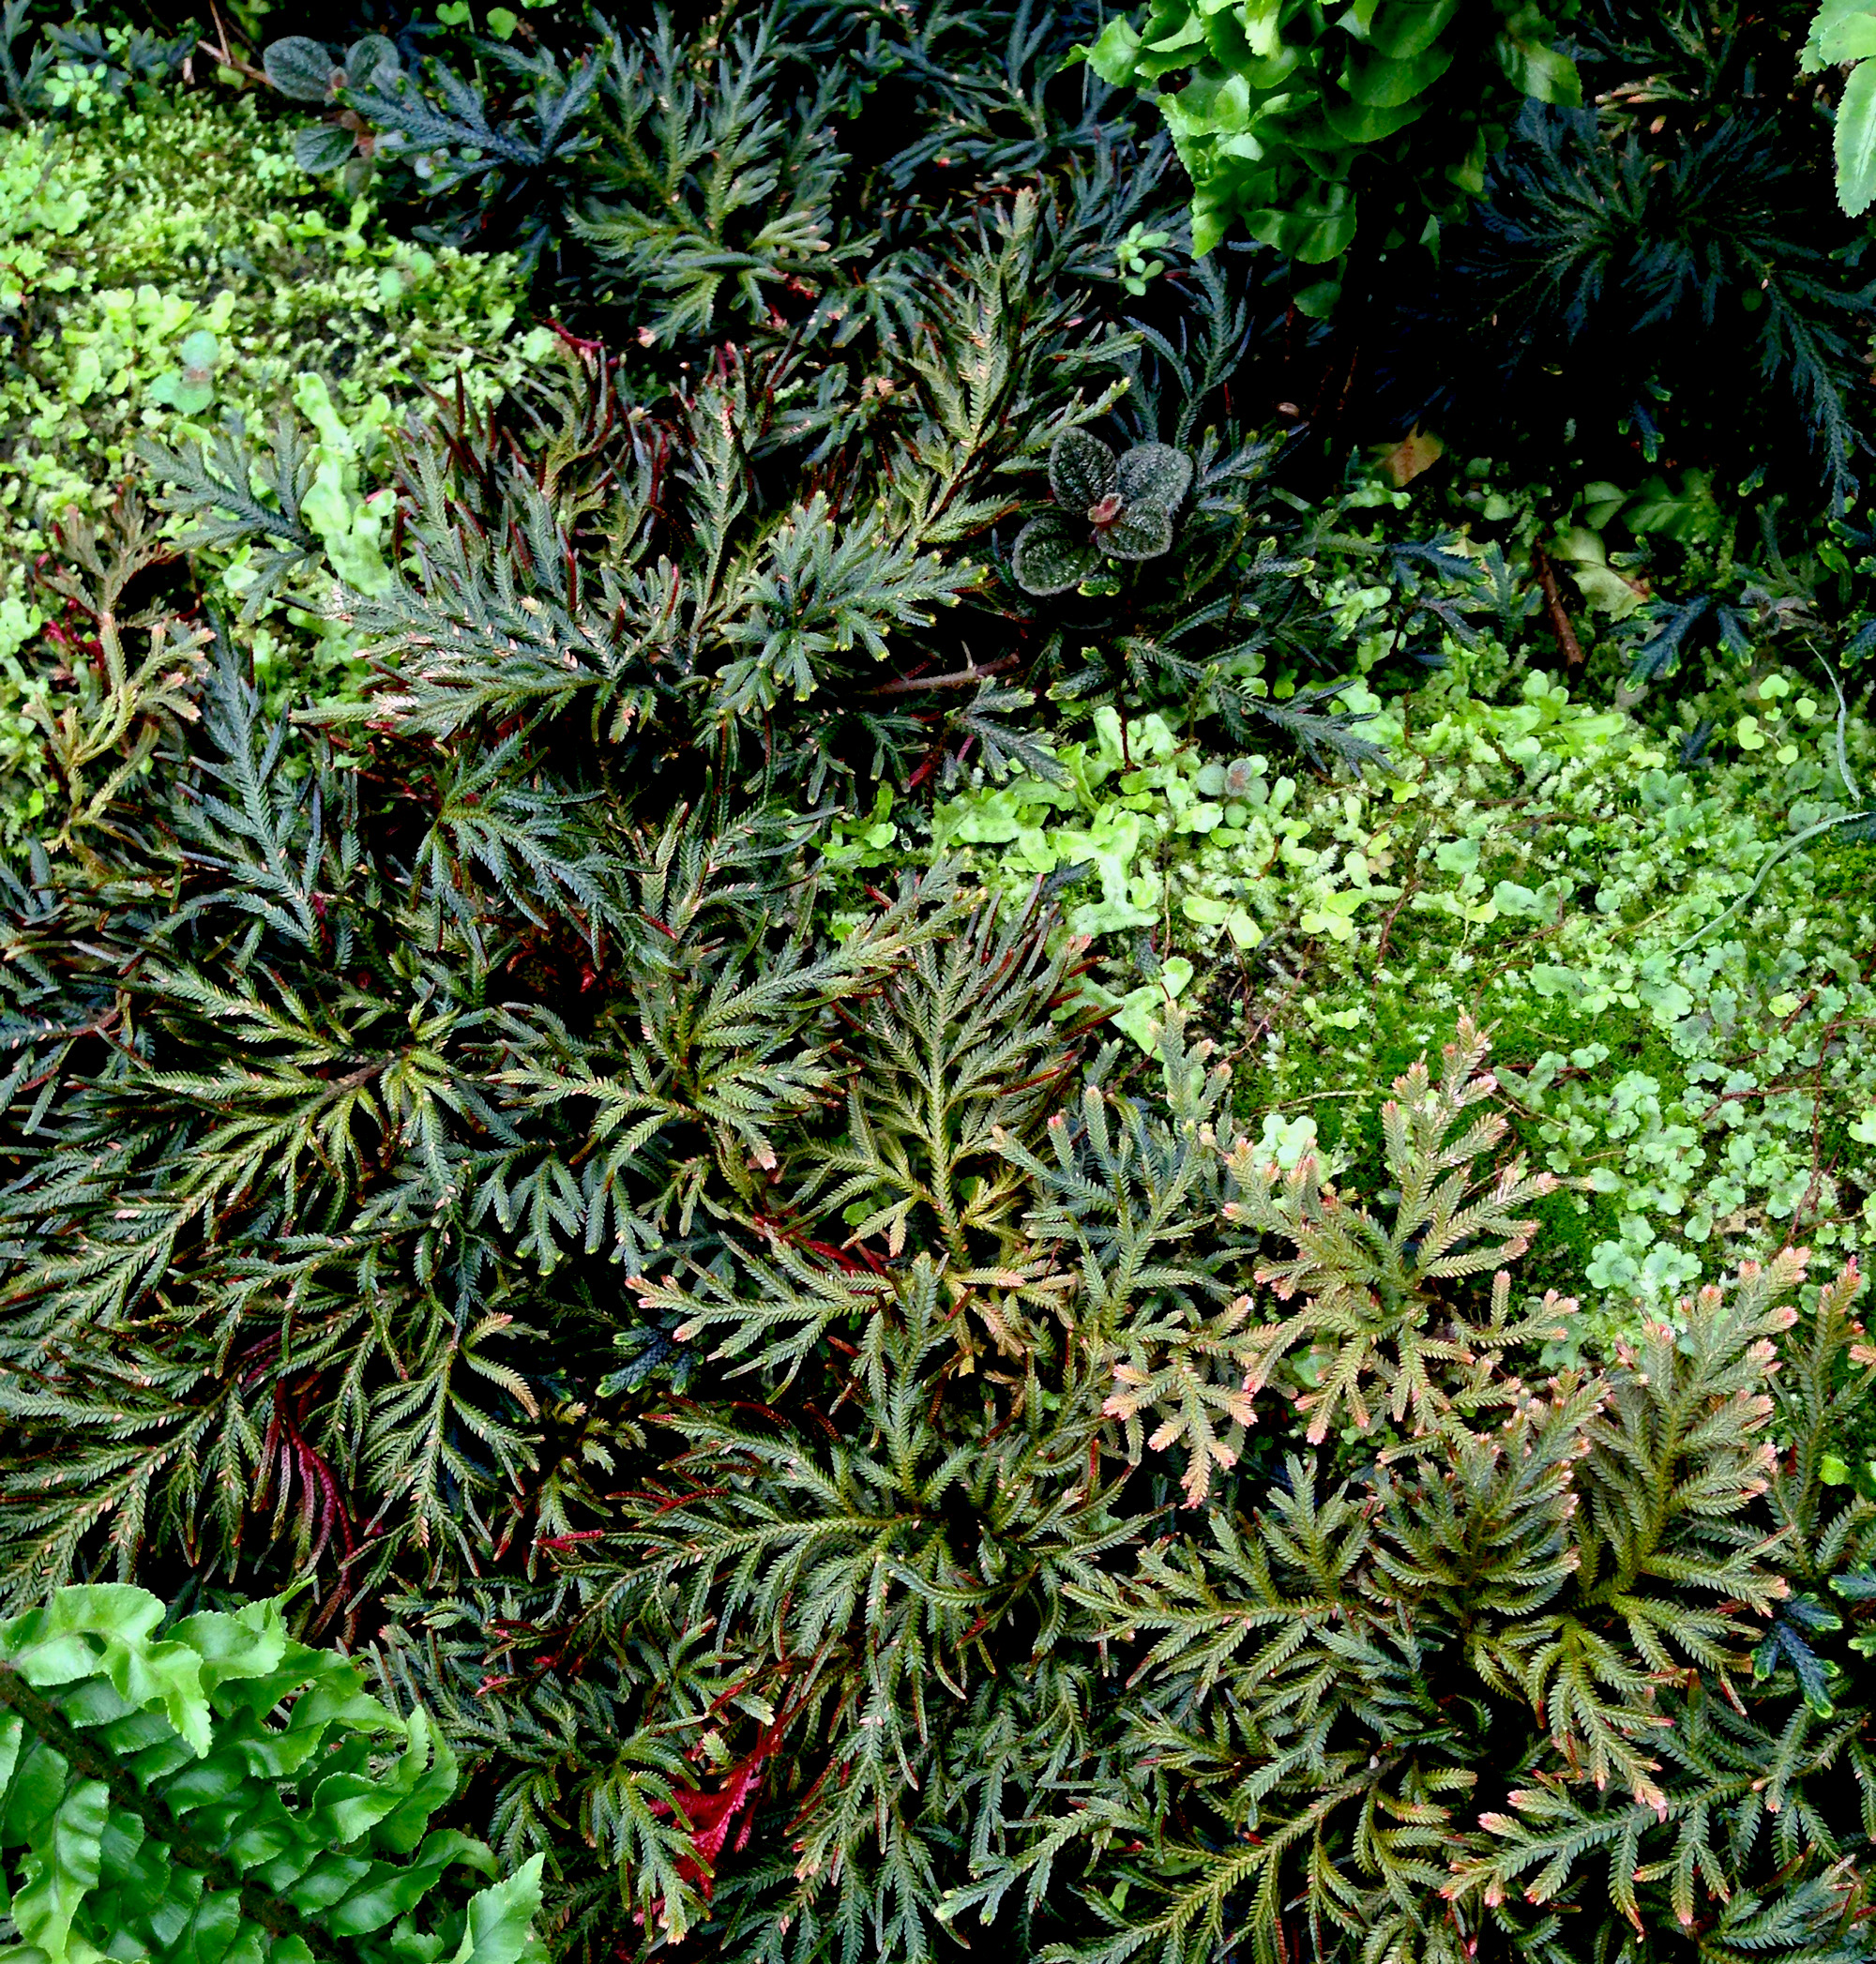 Spike moss (Selaginella erythropus 'Sanguinea'), Fern room, Garfield Park Conservatory, Chicago Illinois